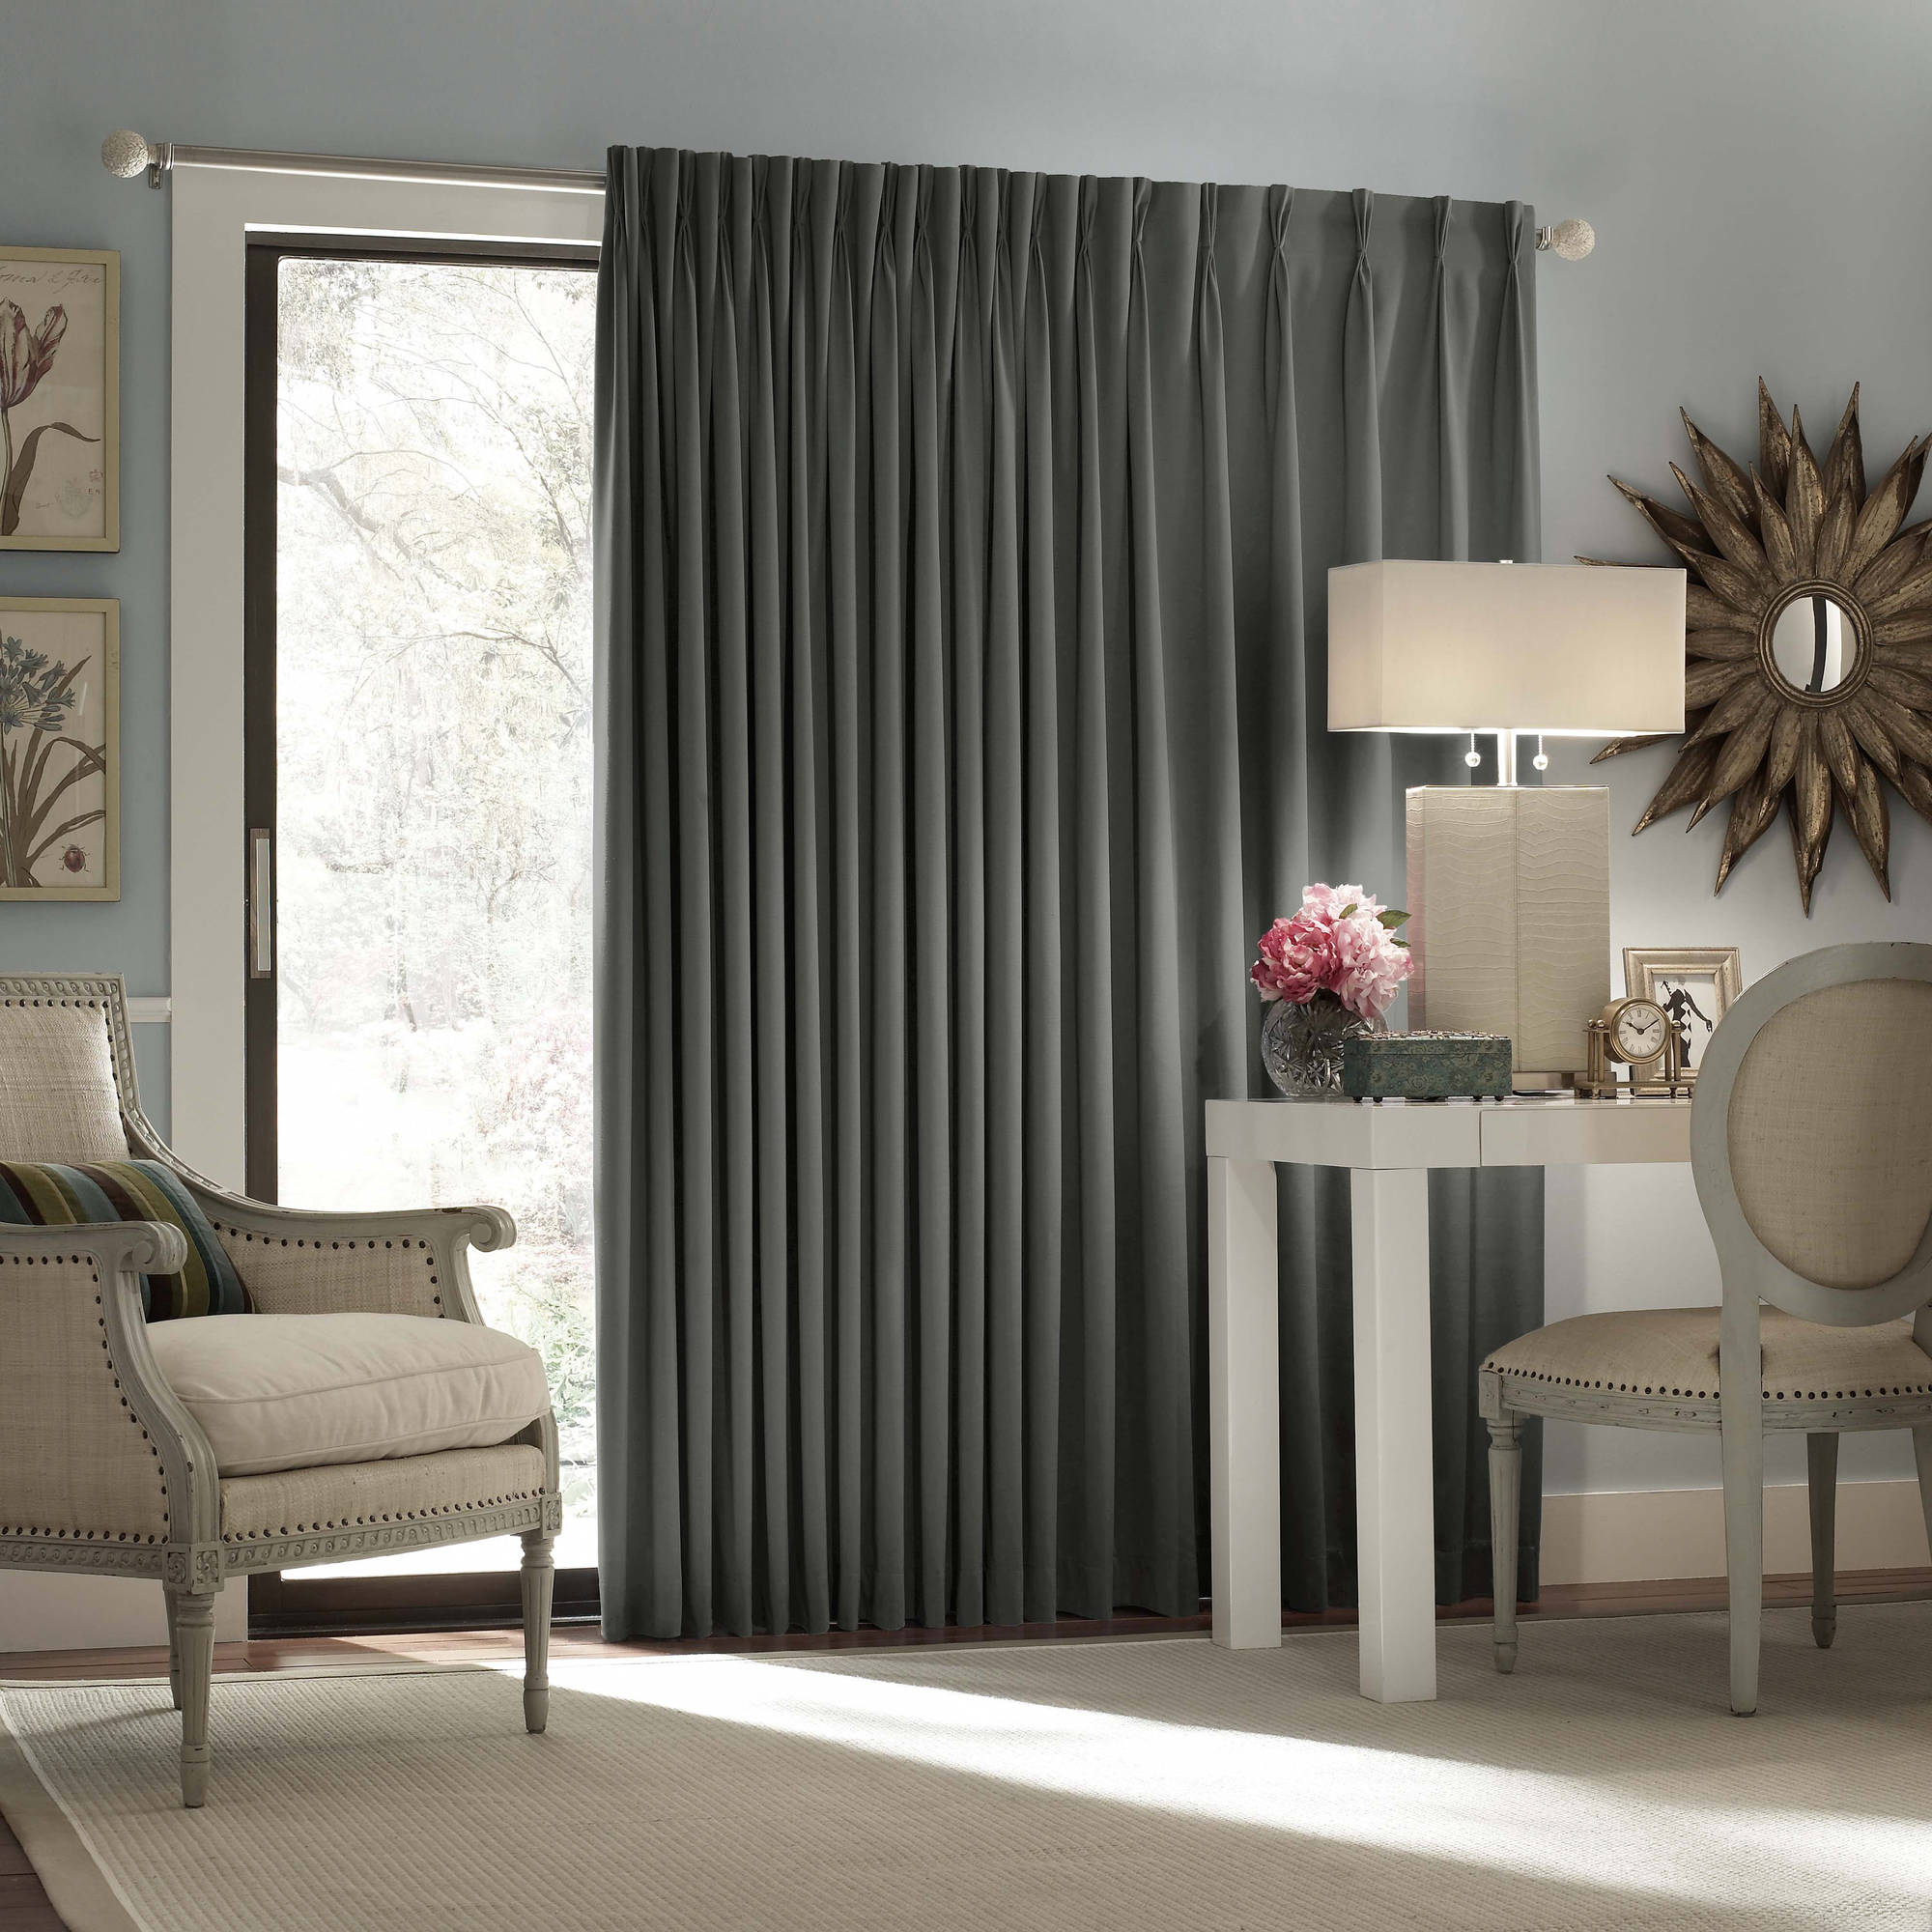 Eclipse Thermal Blackout Patio Door Curtain Panel by Ellery Homestyles